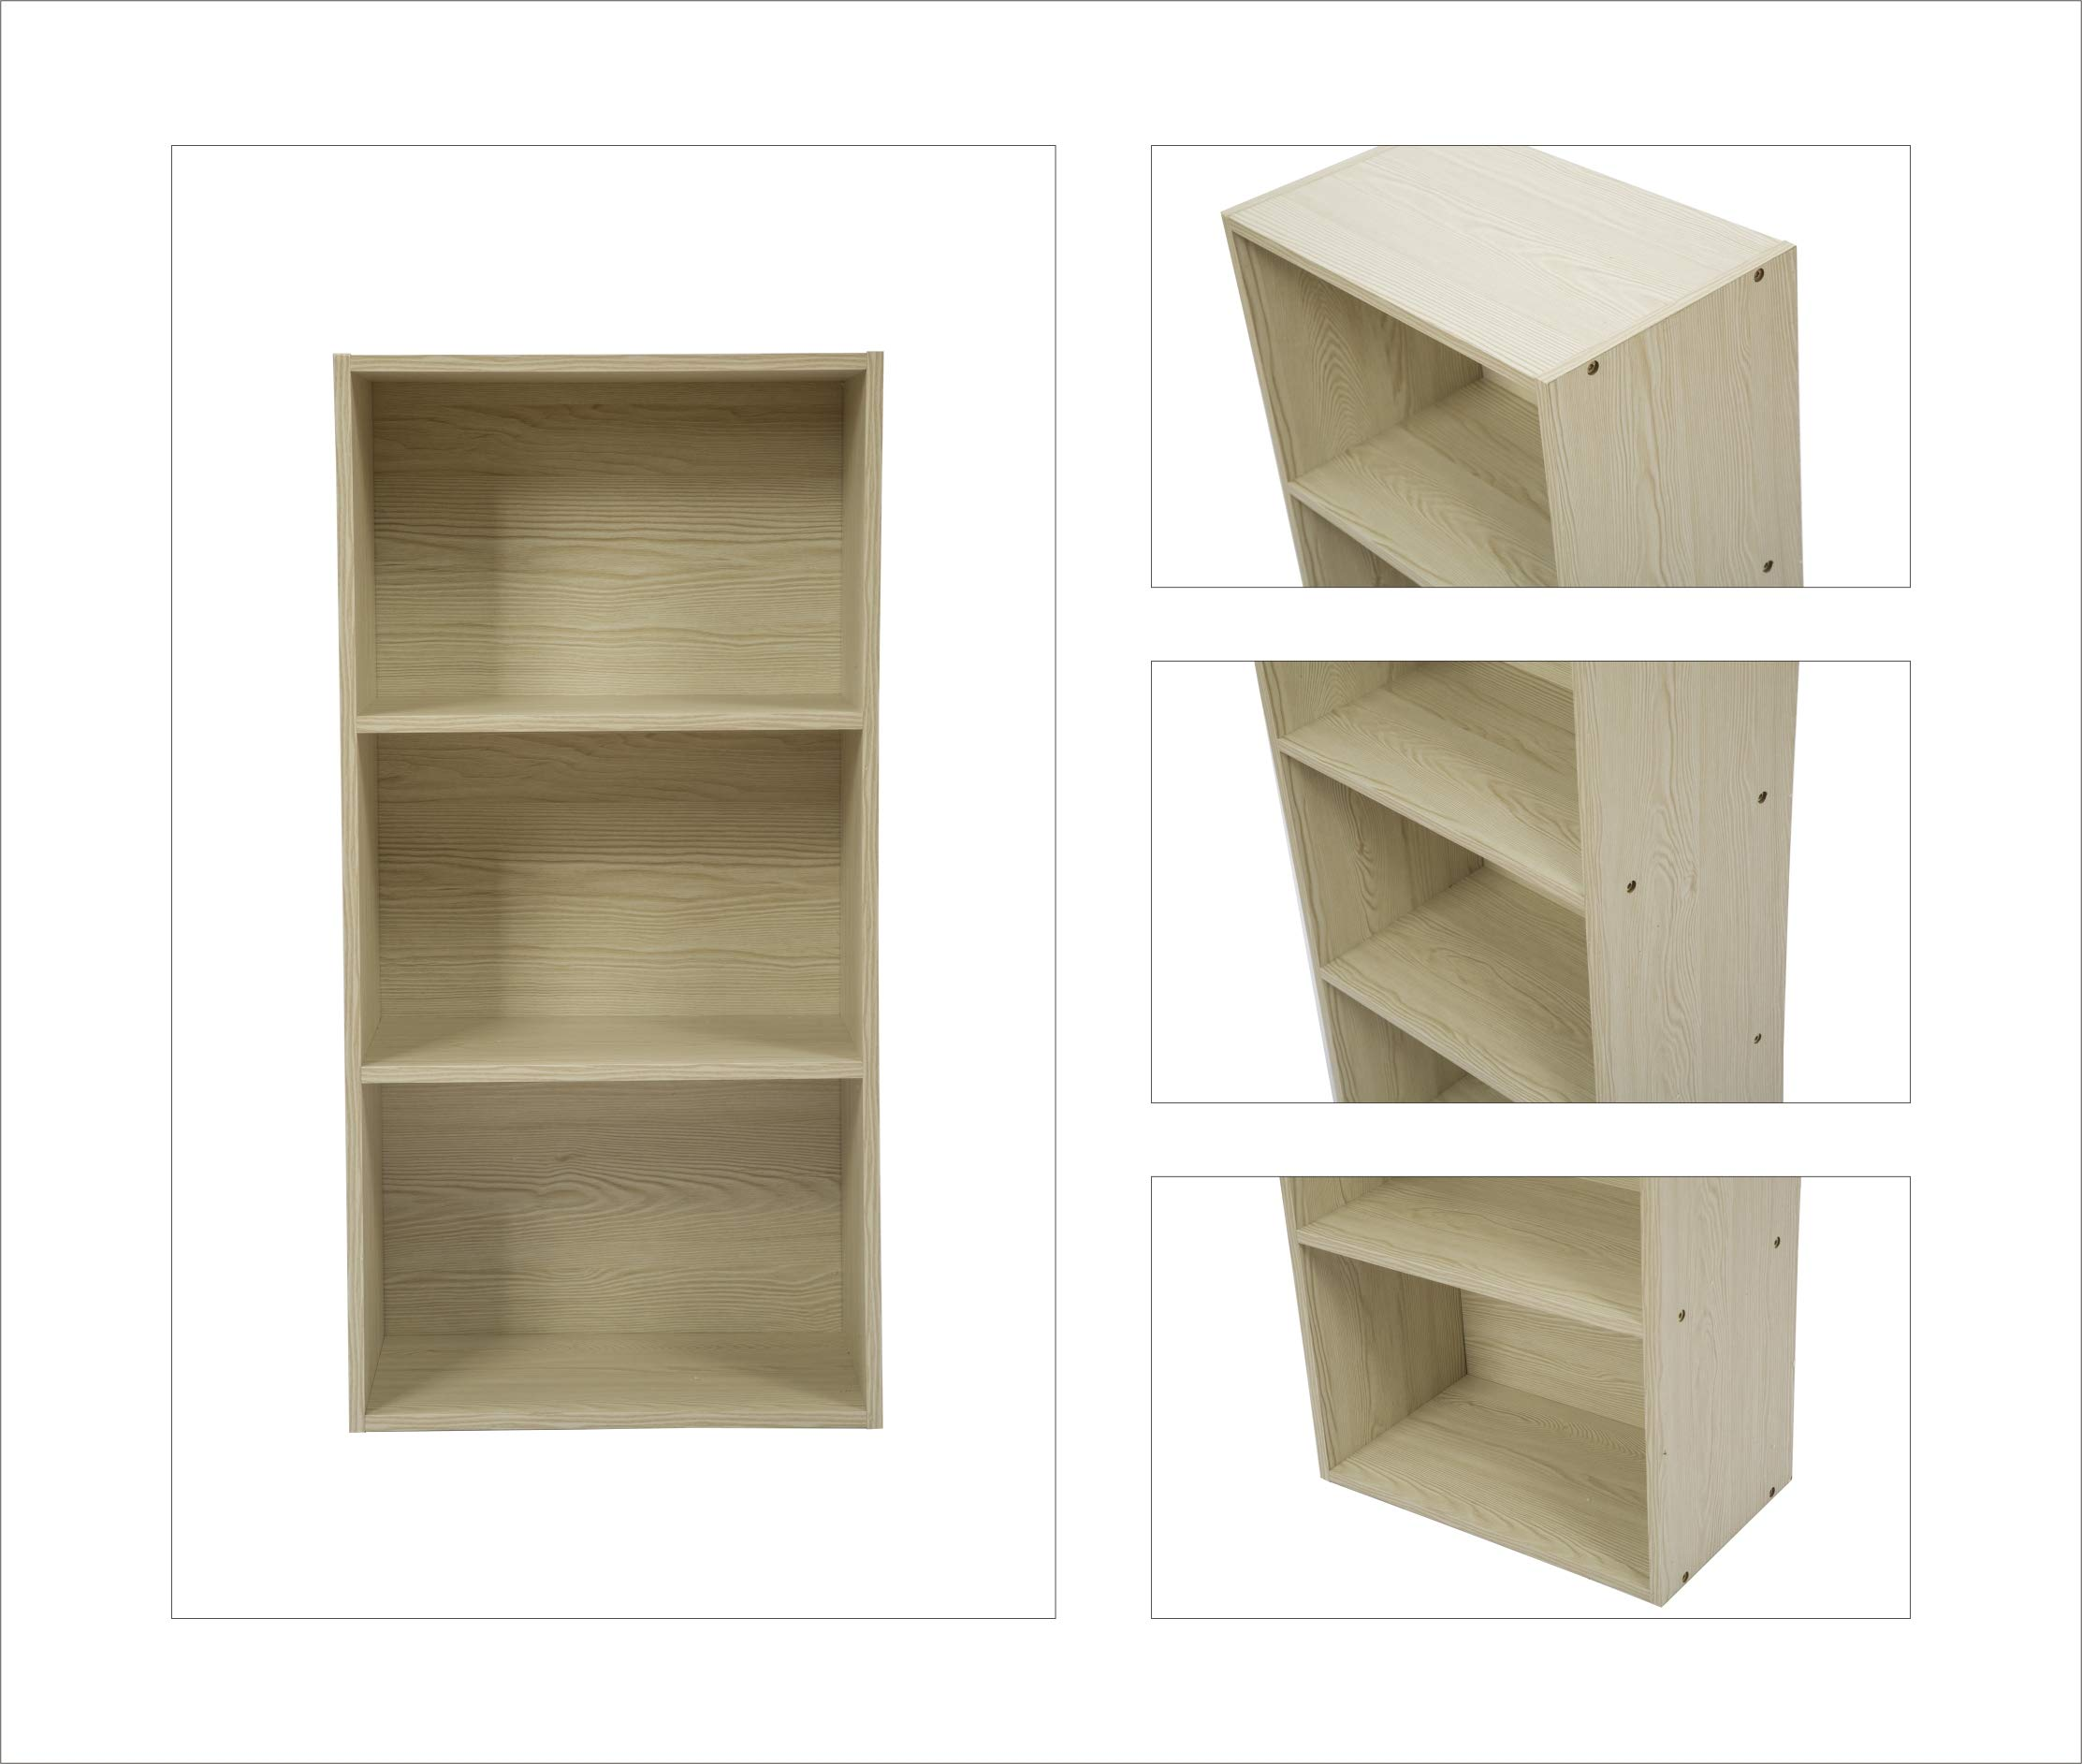 JEROAL 3-Shelf Wooden Bookshelf, 3 Cube Storage Organizer, Display Bookshelf Storage Organizer for Books, Pictures, Decorations, White Oak by JEROAL (Image #7)